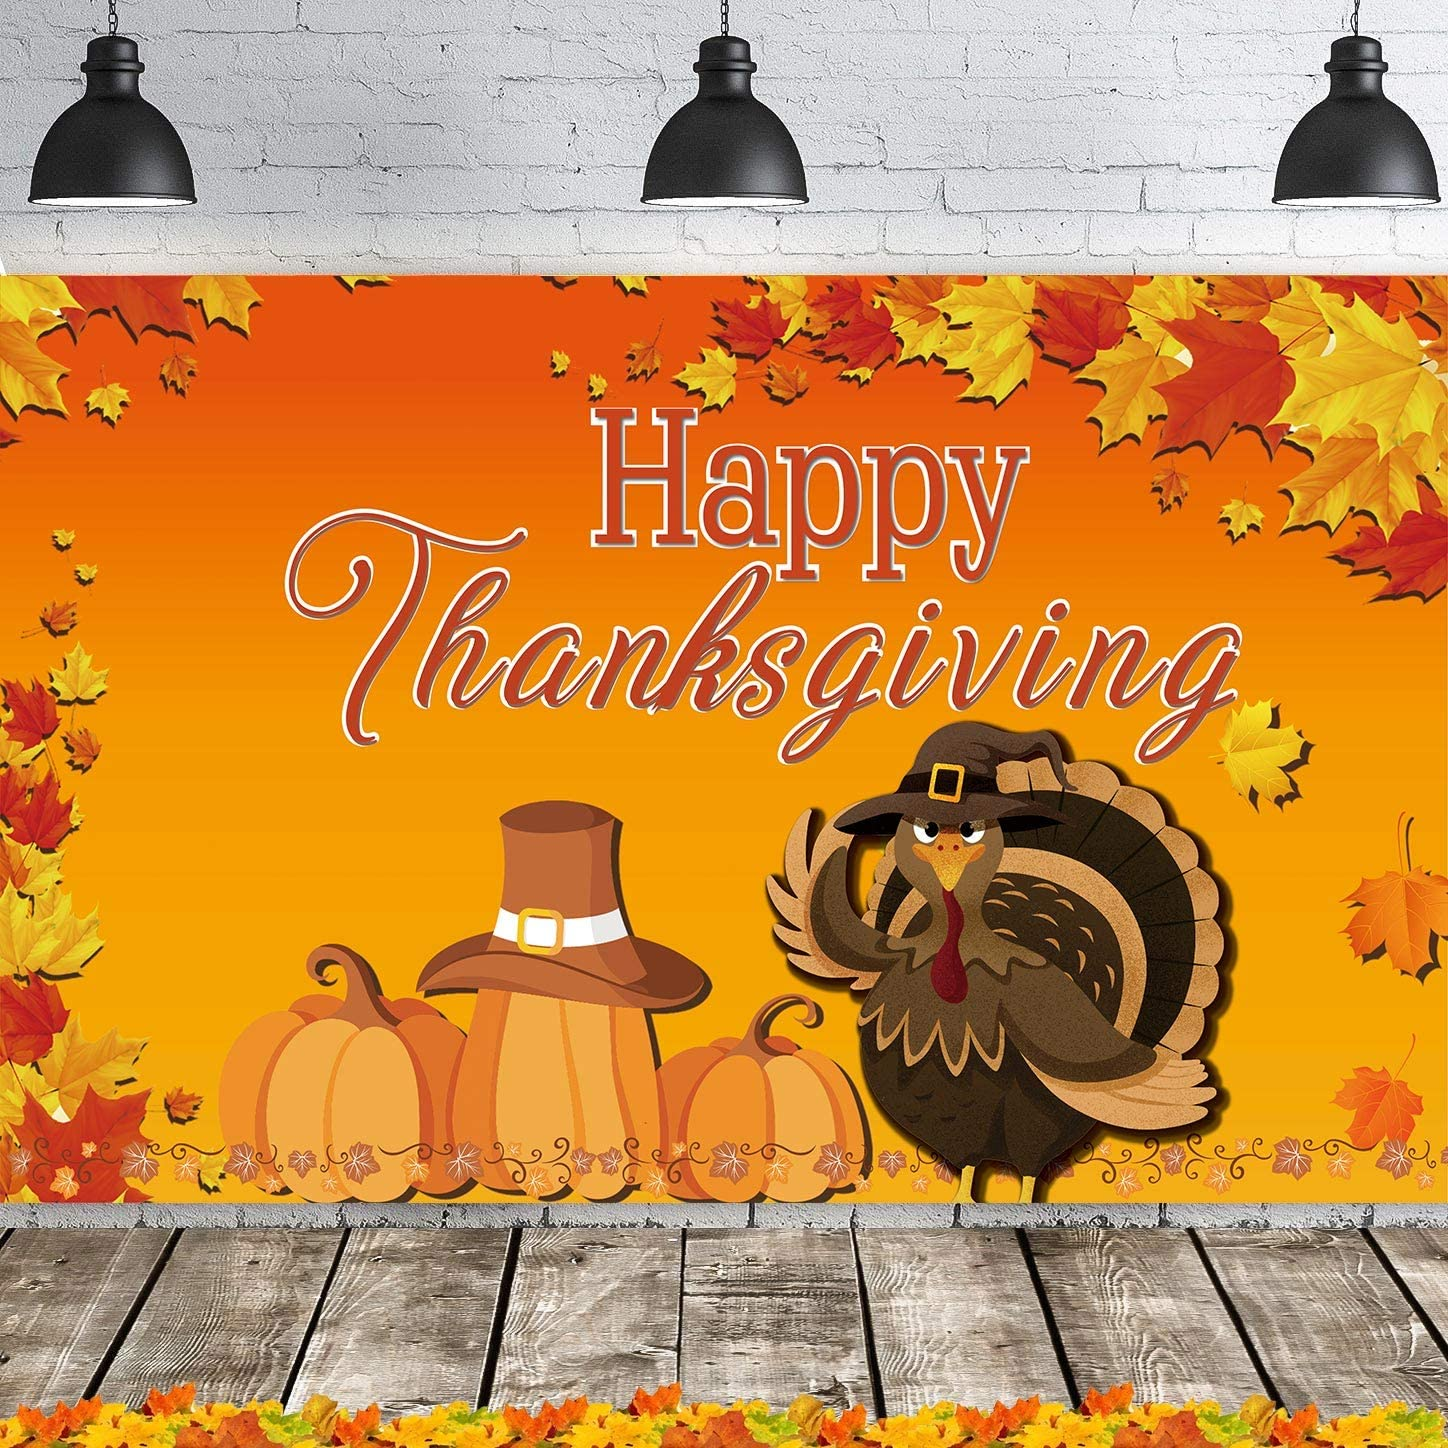 Fecedy Happy Thanksgiving Hanging Extra Large Fabric Sign Poster Background Banner with Pumpkin Maple Leaves Turkey Pattern for Thanksgiving Day Autumn Harvest Decorations 43.3